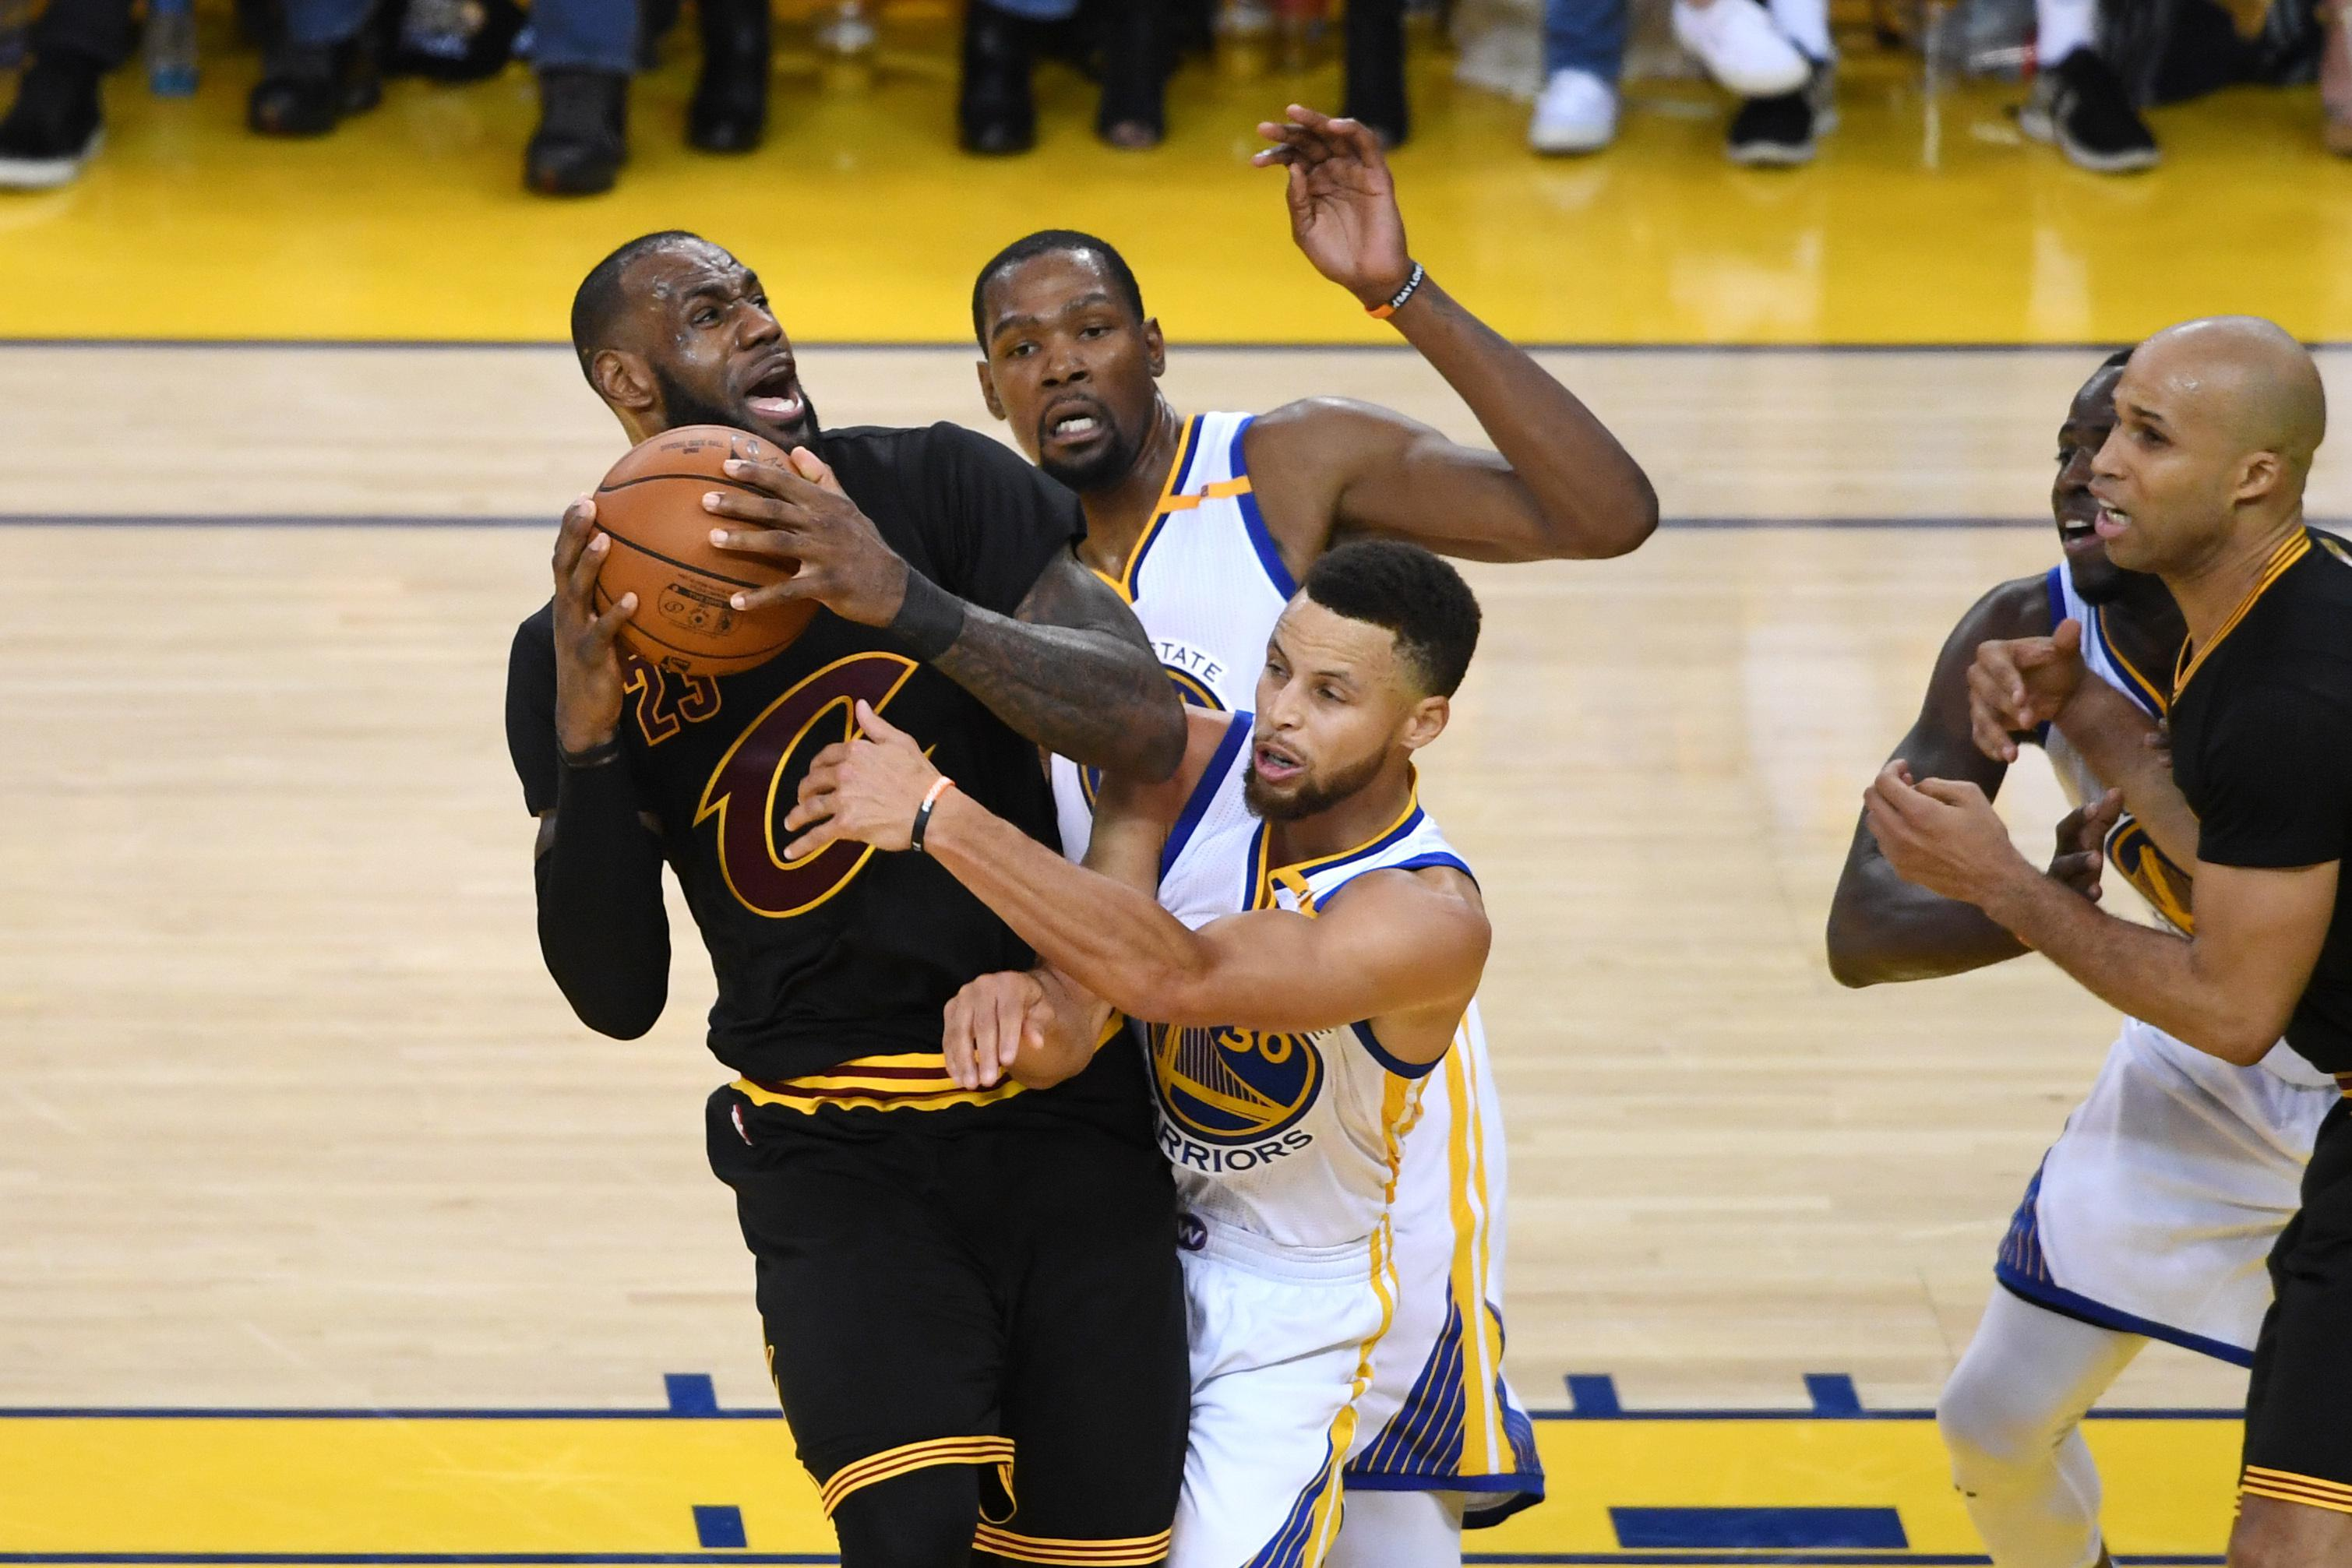 OAKLAND, CA - JUNE 12: LeBron James #23 of the Cleveland Cavaliers is defended by Kevin Durant #35 and Stephen Curry #30 of the Golden State Warriors during the second half in Game 5 of the 2017 NBA Finals at ORACLE Arena on June 12, 2017 in Oakland, California. NOTE TO USER: User expressly acknowledges and agrees that, by downloading and or using this photograph, User is consenting to the terms and conditions of the Getty Images License Agreement.  (Photo by Thearon W. Henderson/Getty Images)